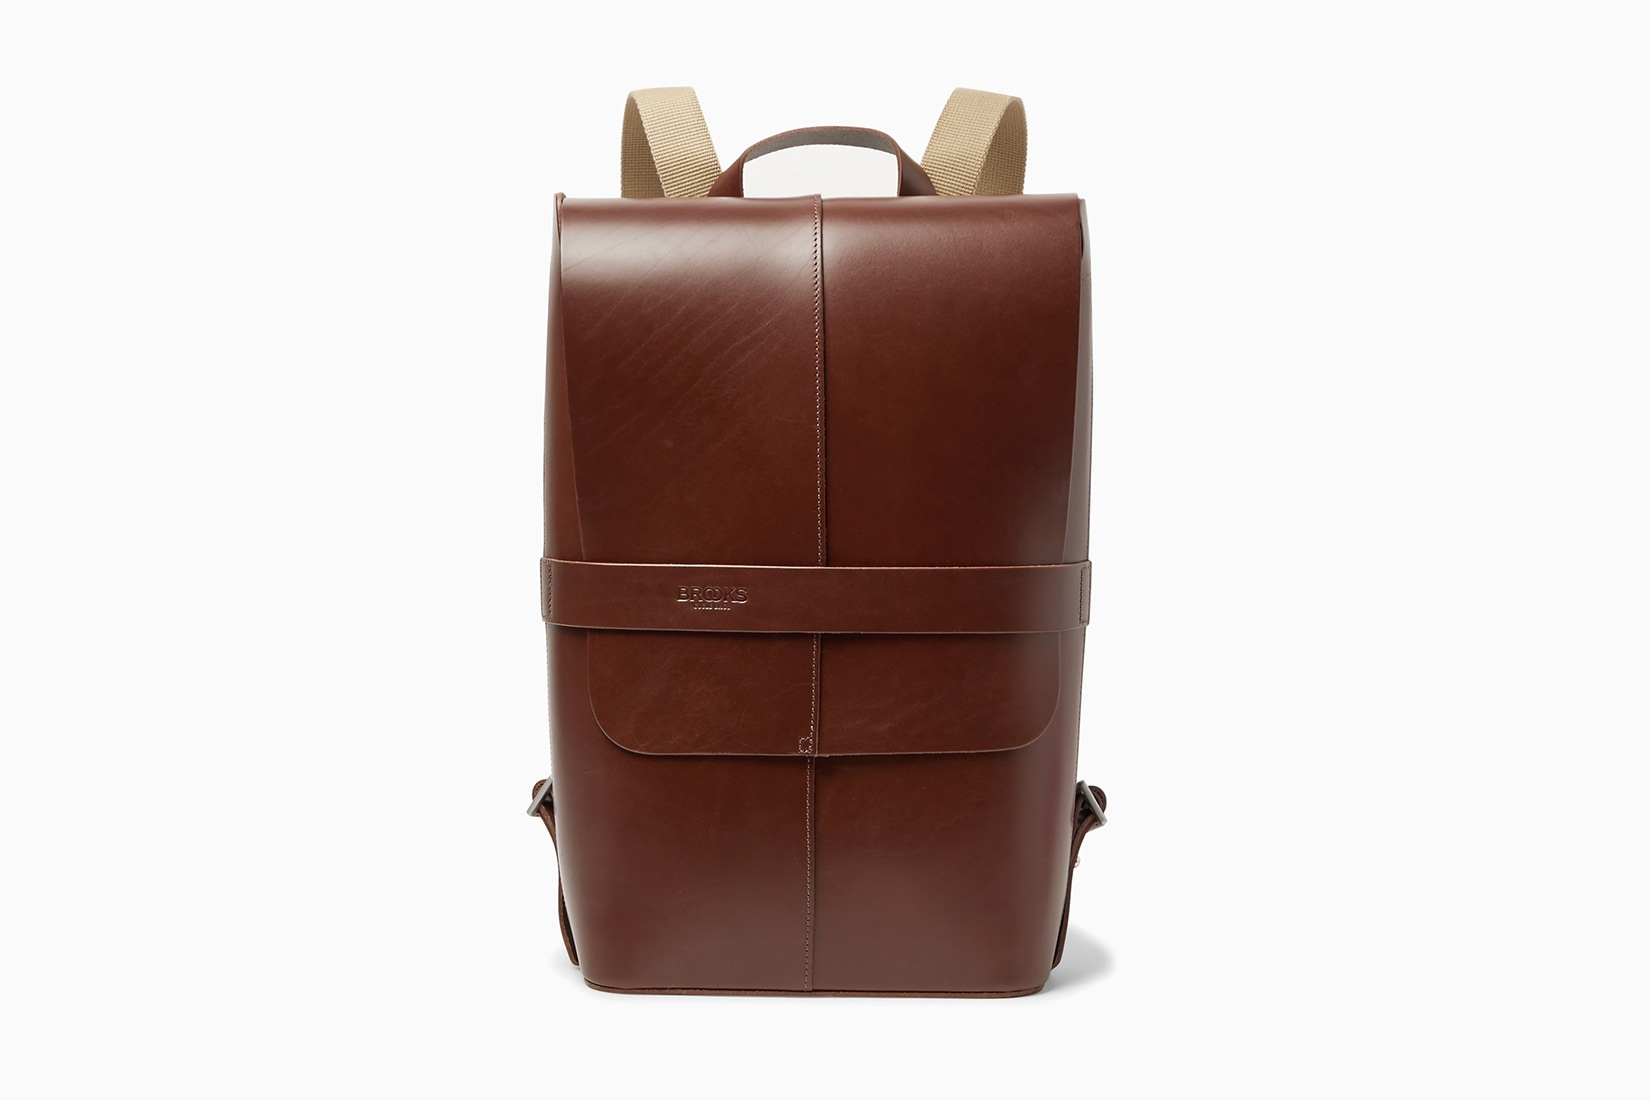 best edc backpack brooks england leather - Luxe Digital